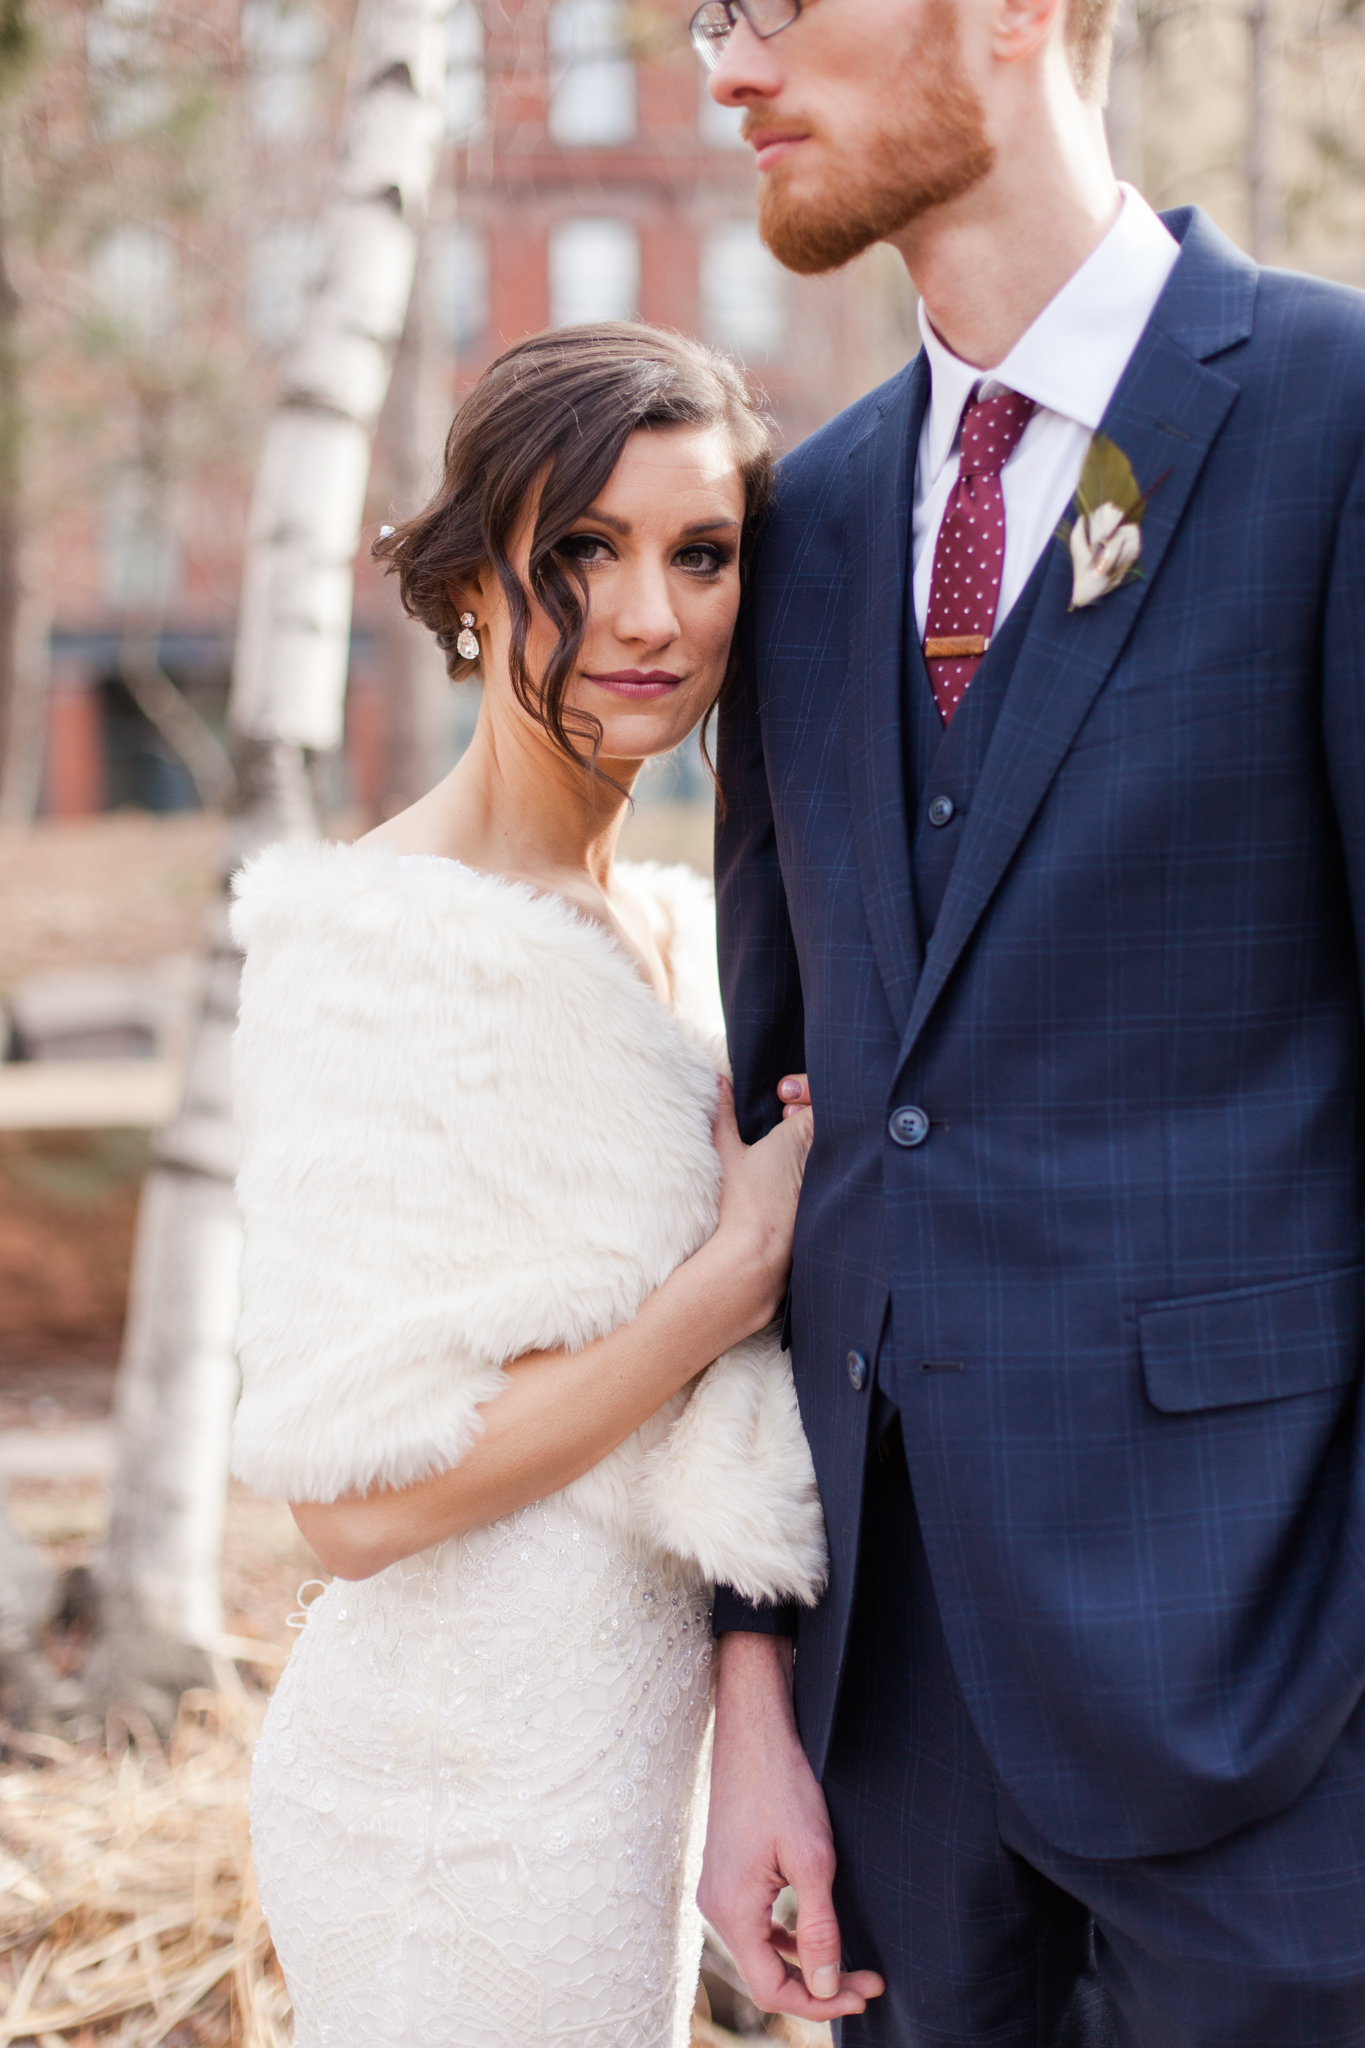 Winter fur wap | plaid suit with crimson tie and fishing lure boutonniere | Sixpence Events & Planning | Jessa Anderson Photography | winter wedding